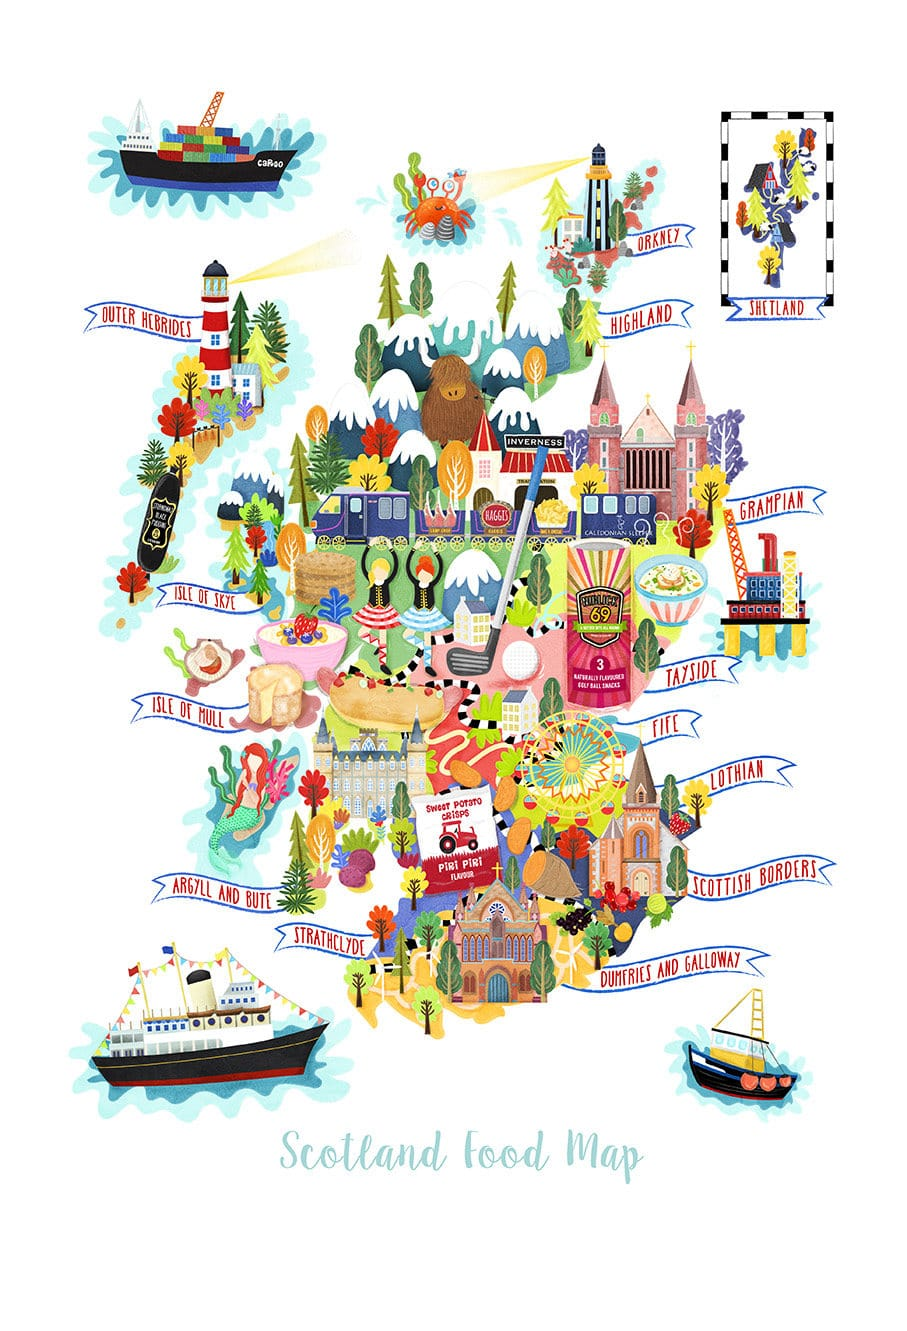 The Scotland Food Map Illustration Postcard Mini Print ...